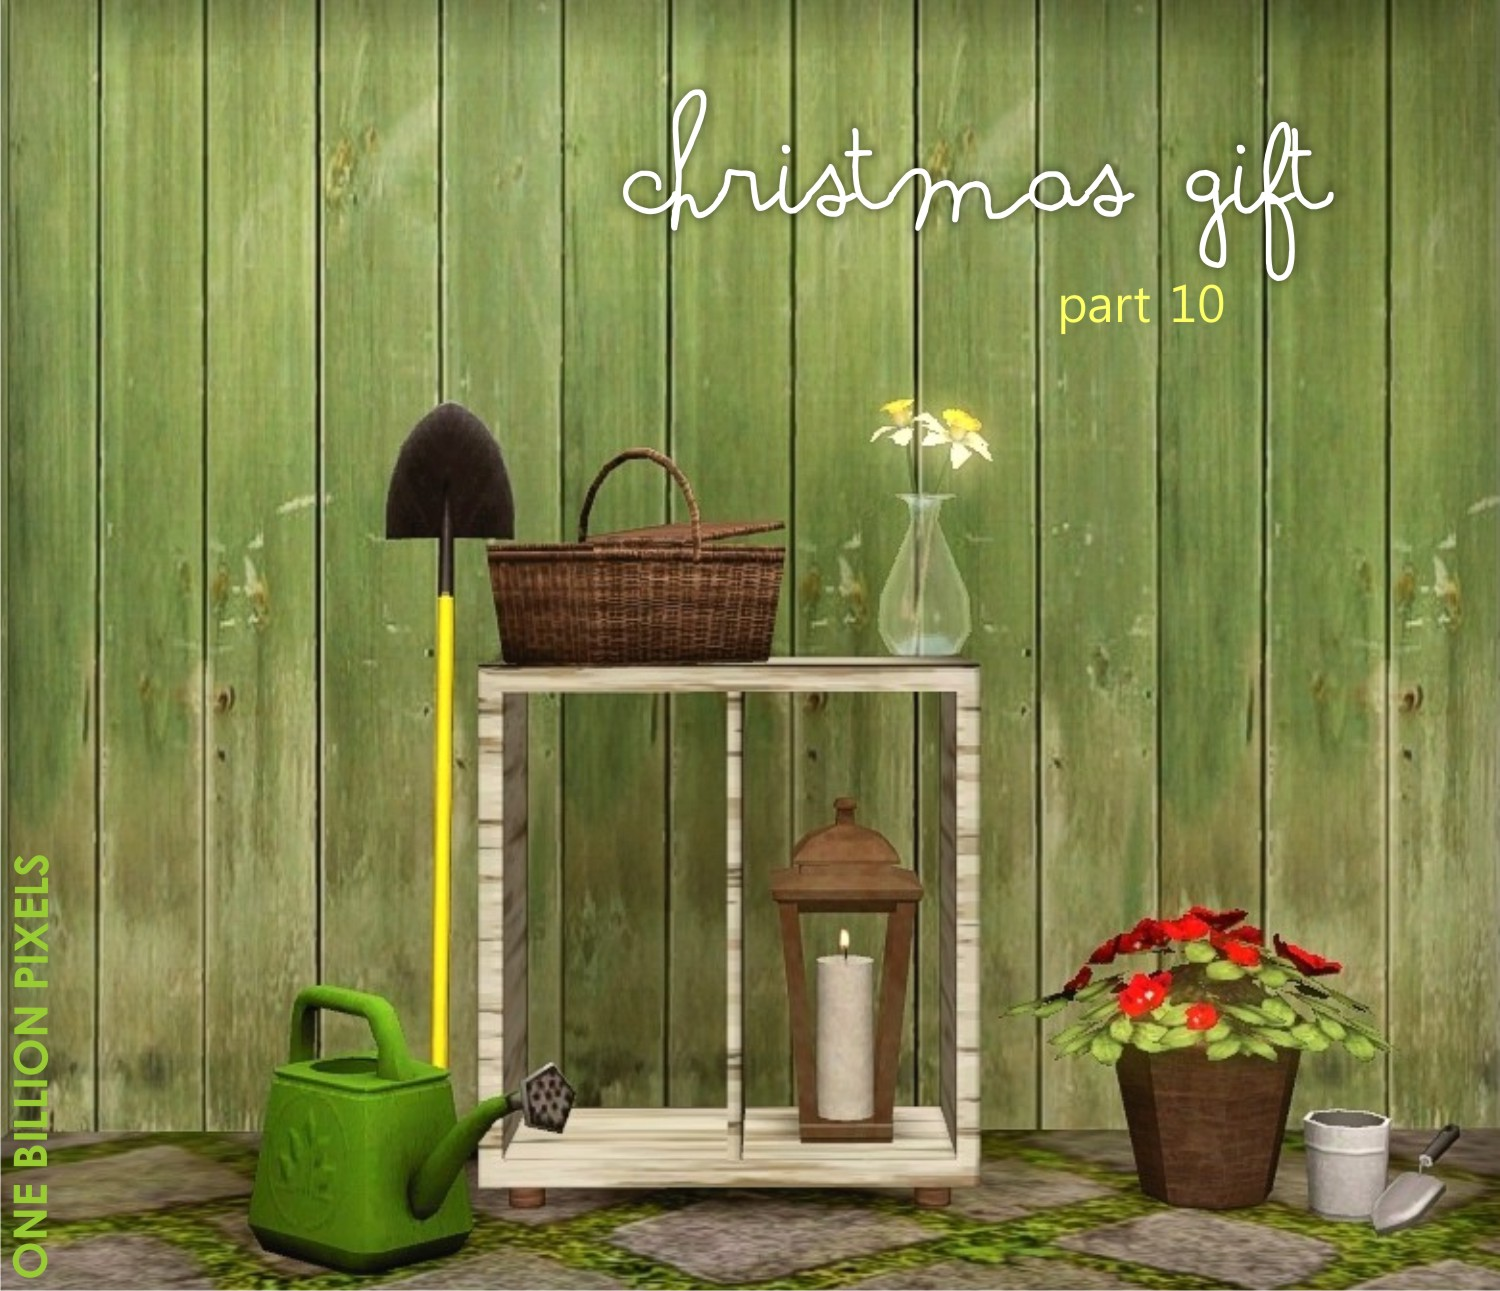 christmas gift part 10 gardening tools flowers shelves